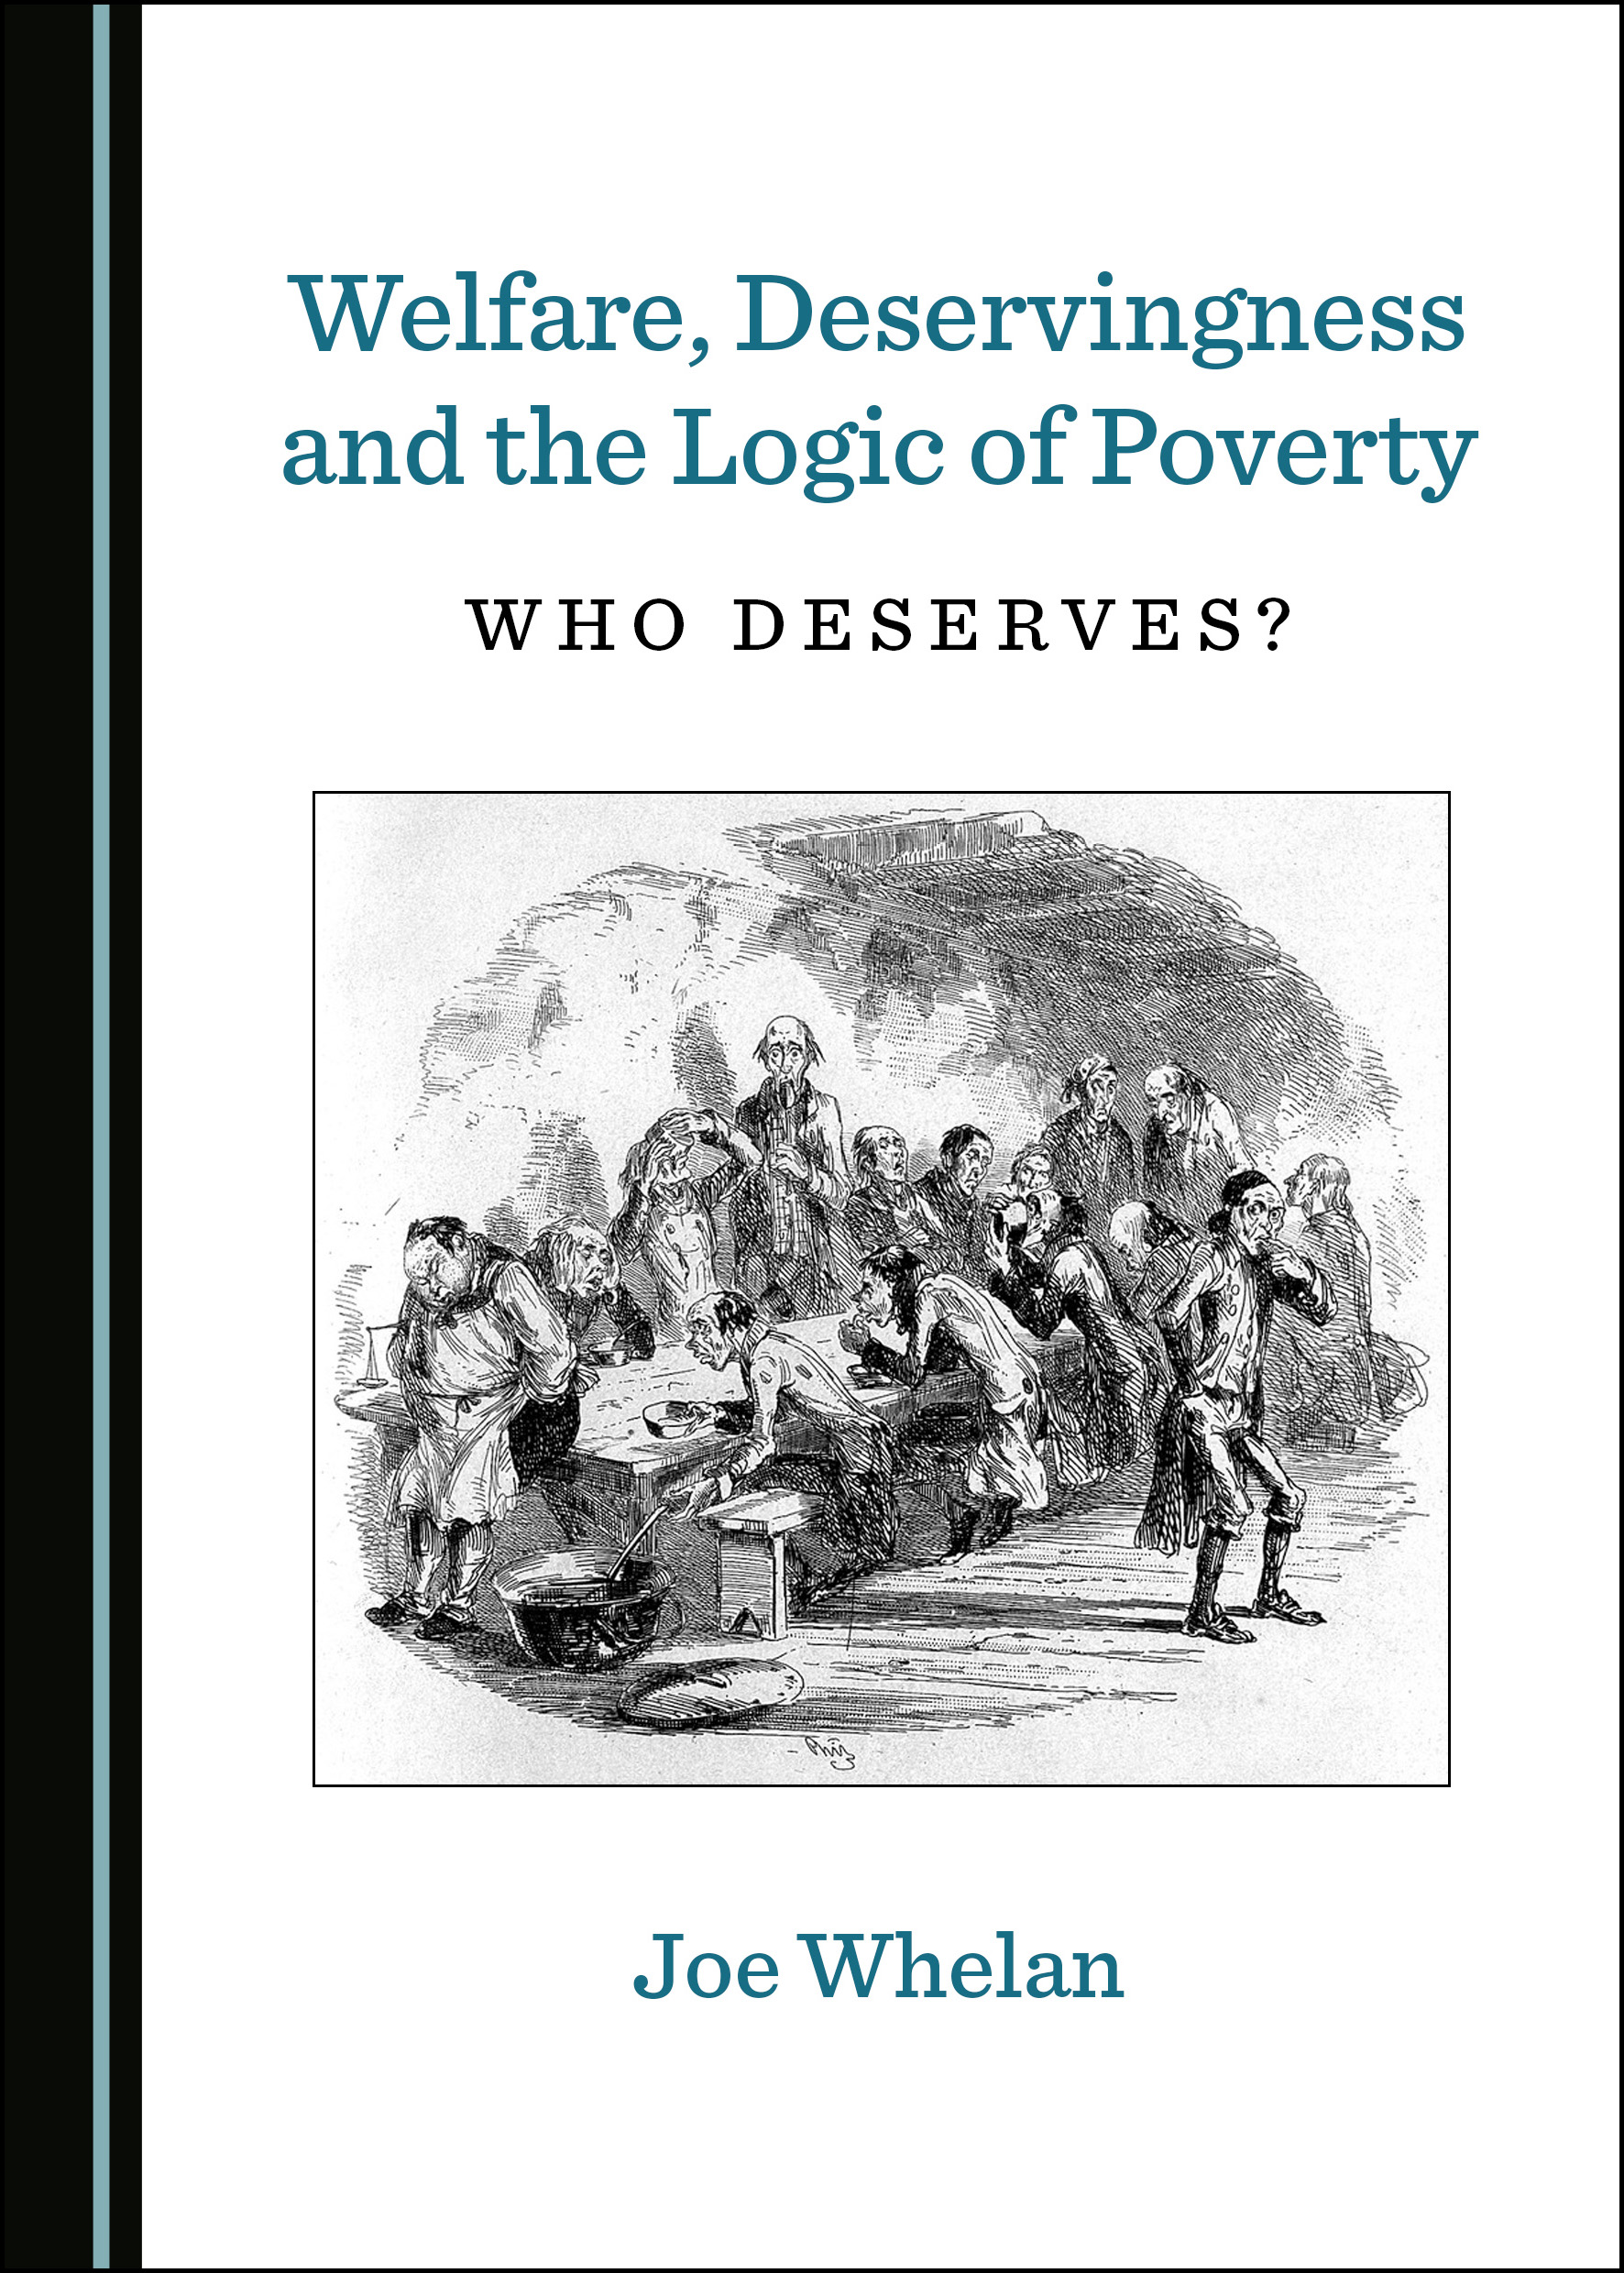 Welfare, Deservingness and the Logic of Poverty: Who Deserves?